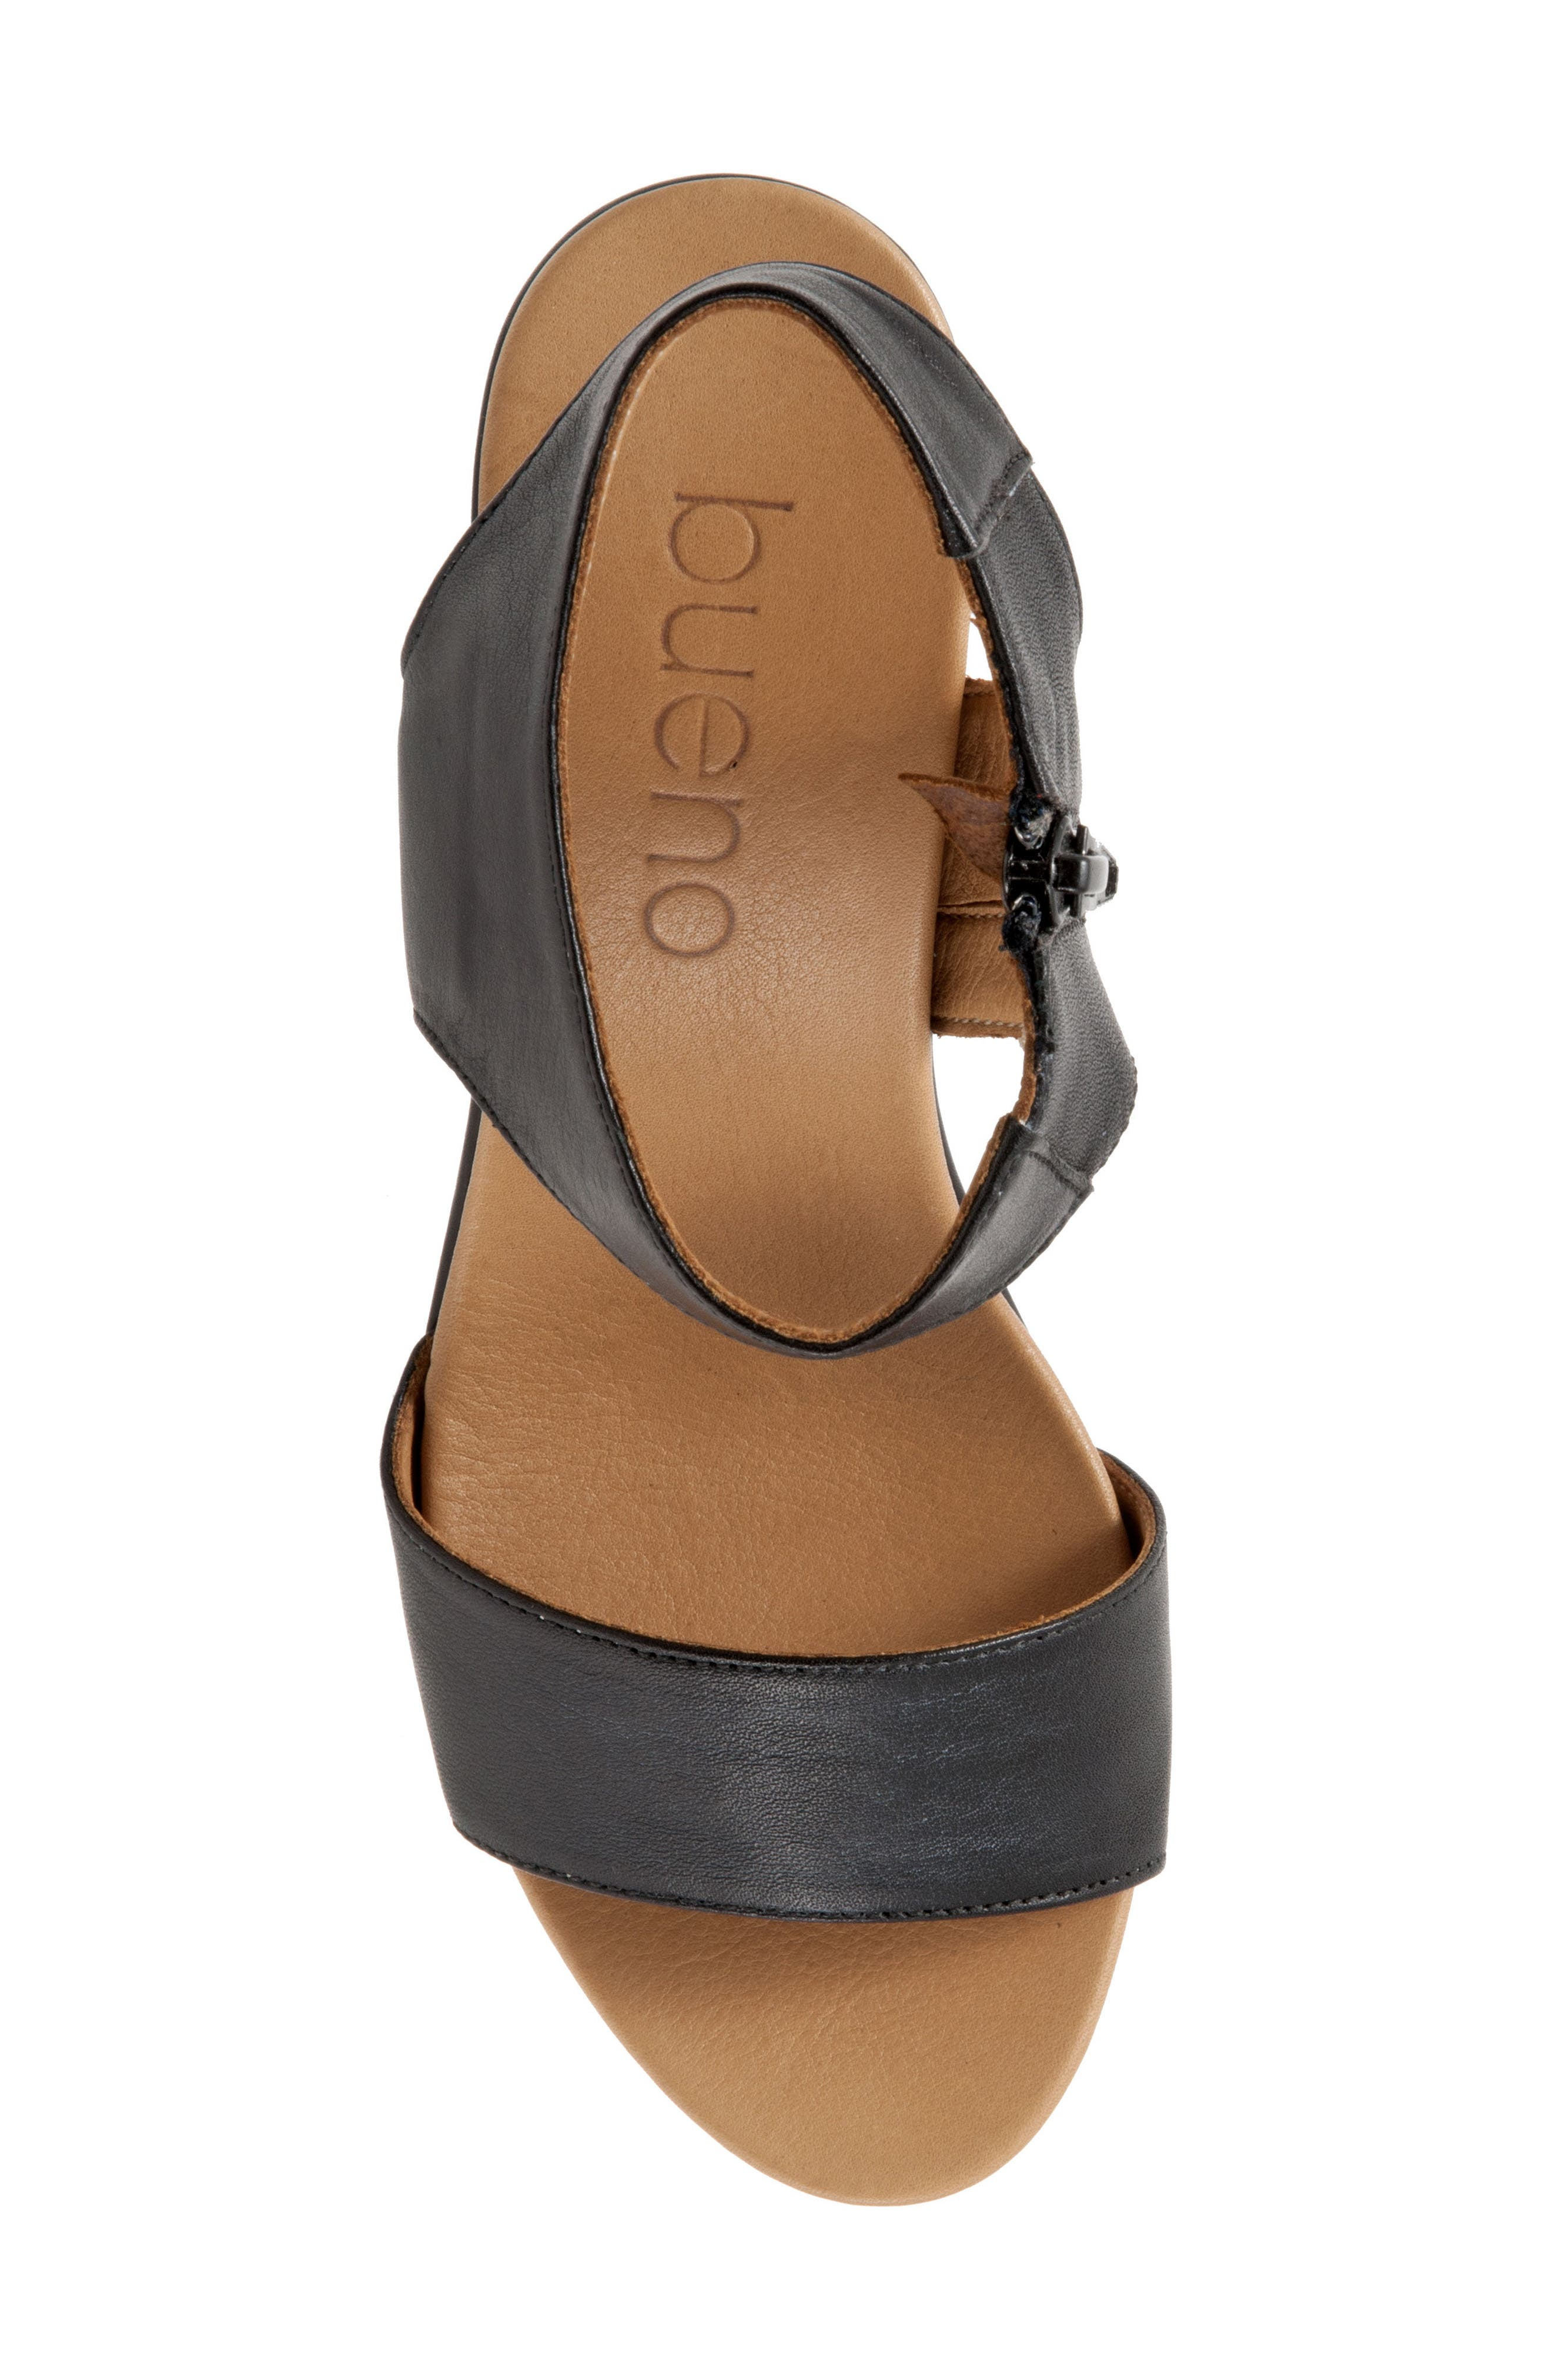 Ida Wedge Sandal,                             Alternate thumbnail 7, color,                             Black Leather